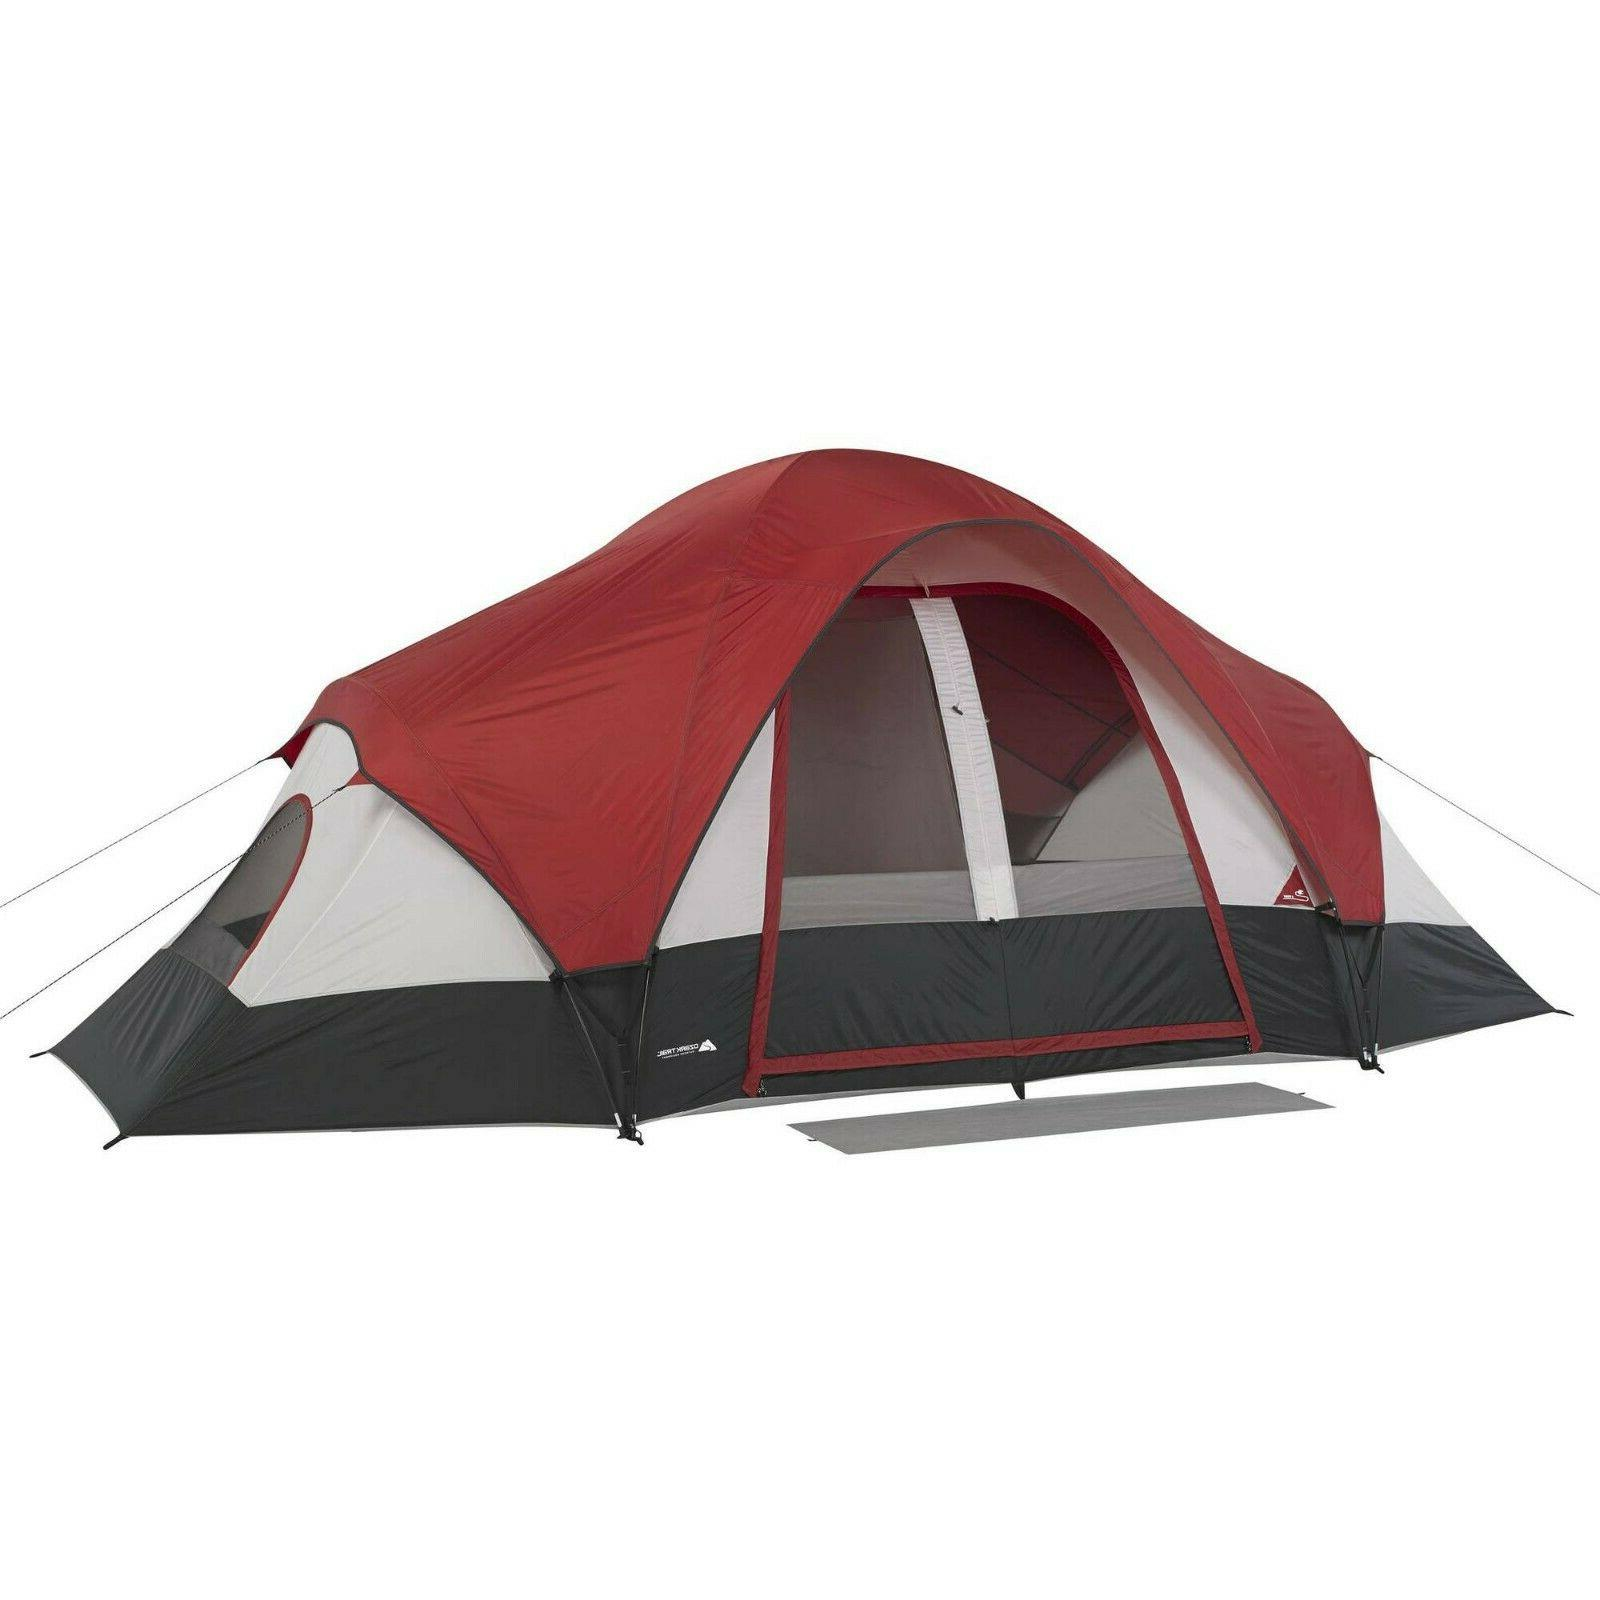 Ozark Trail 8-Person Family Tent with Re